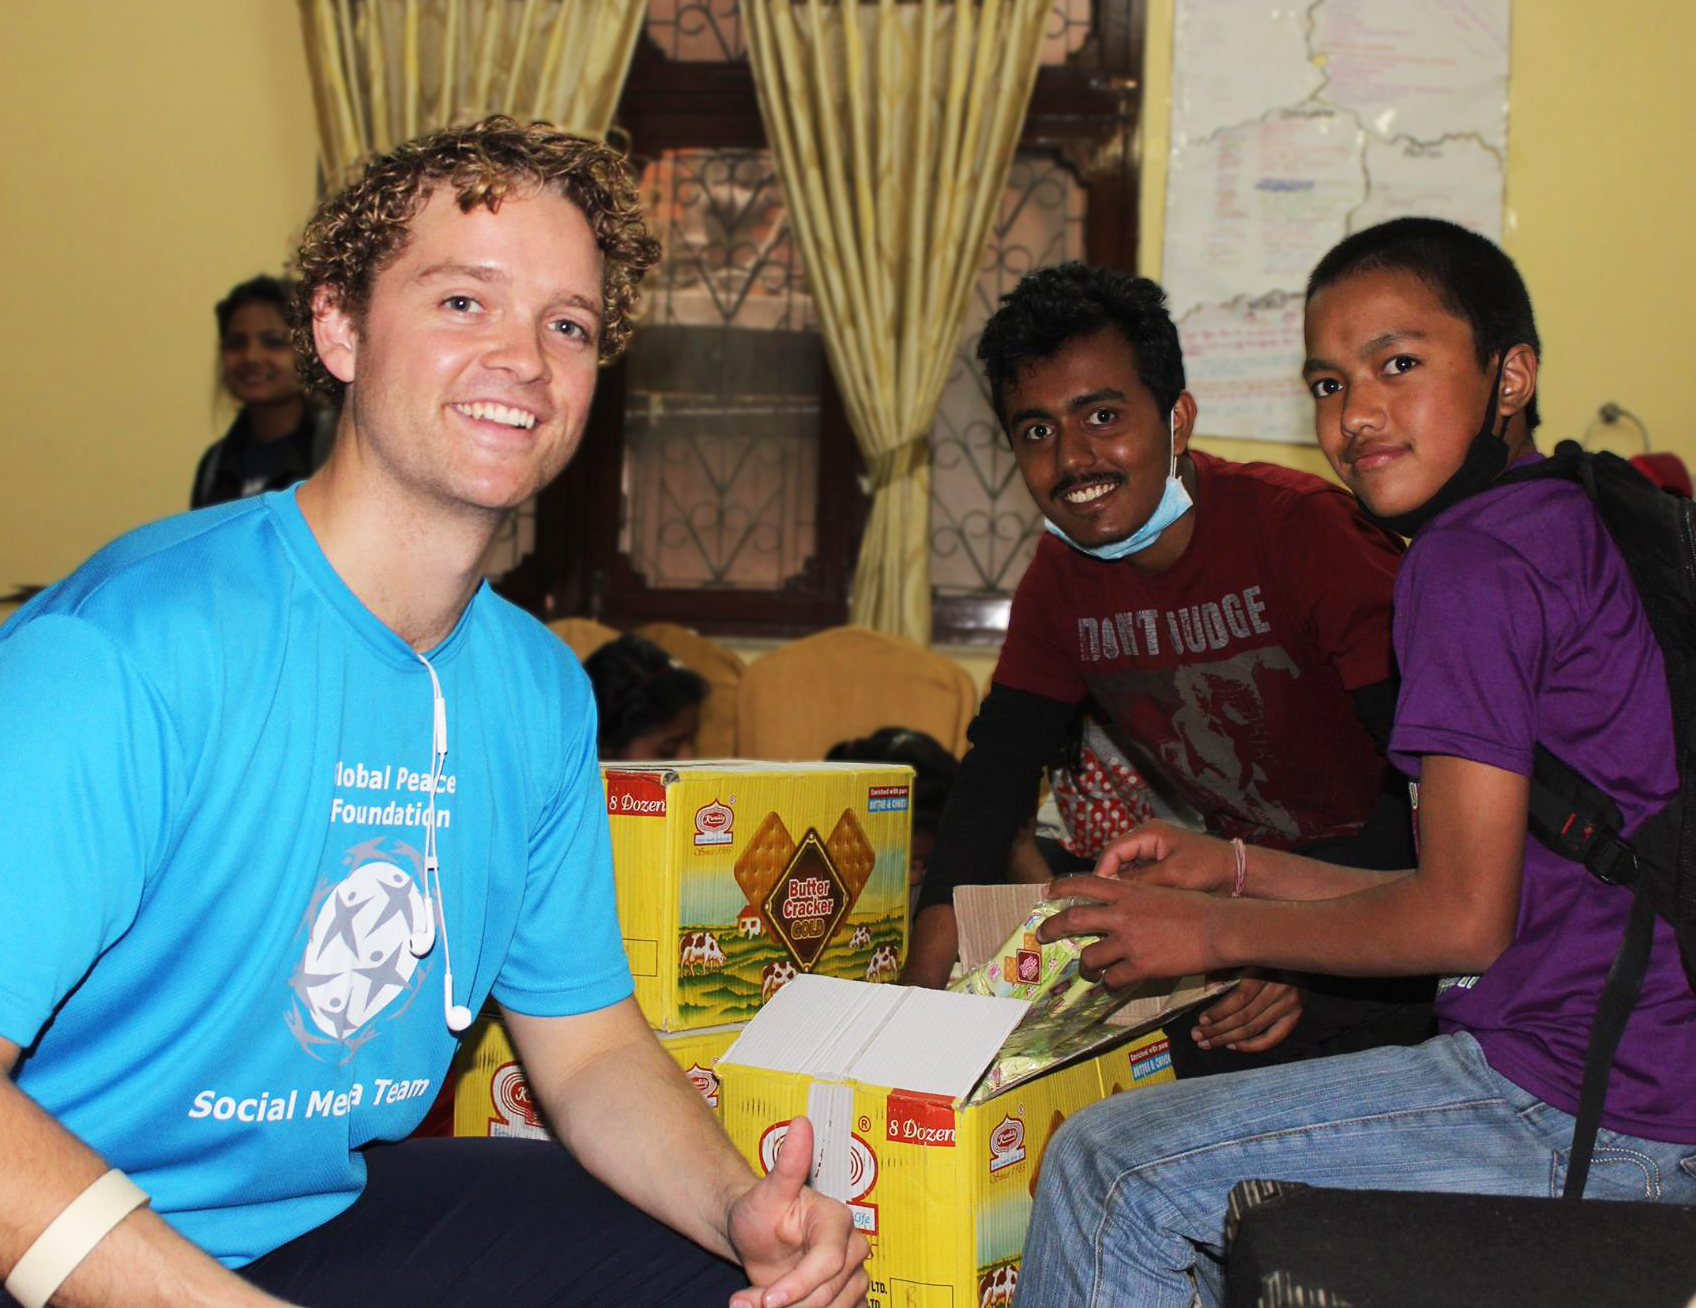 Founder of the Student Volunteer Army from Christchurch, NZ and member of the Asia Pacific Peace and Development Service Alliance  brings his years experience coordinating student volunteer efforts for disaster relief